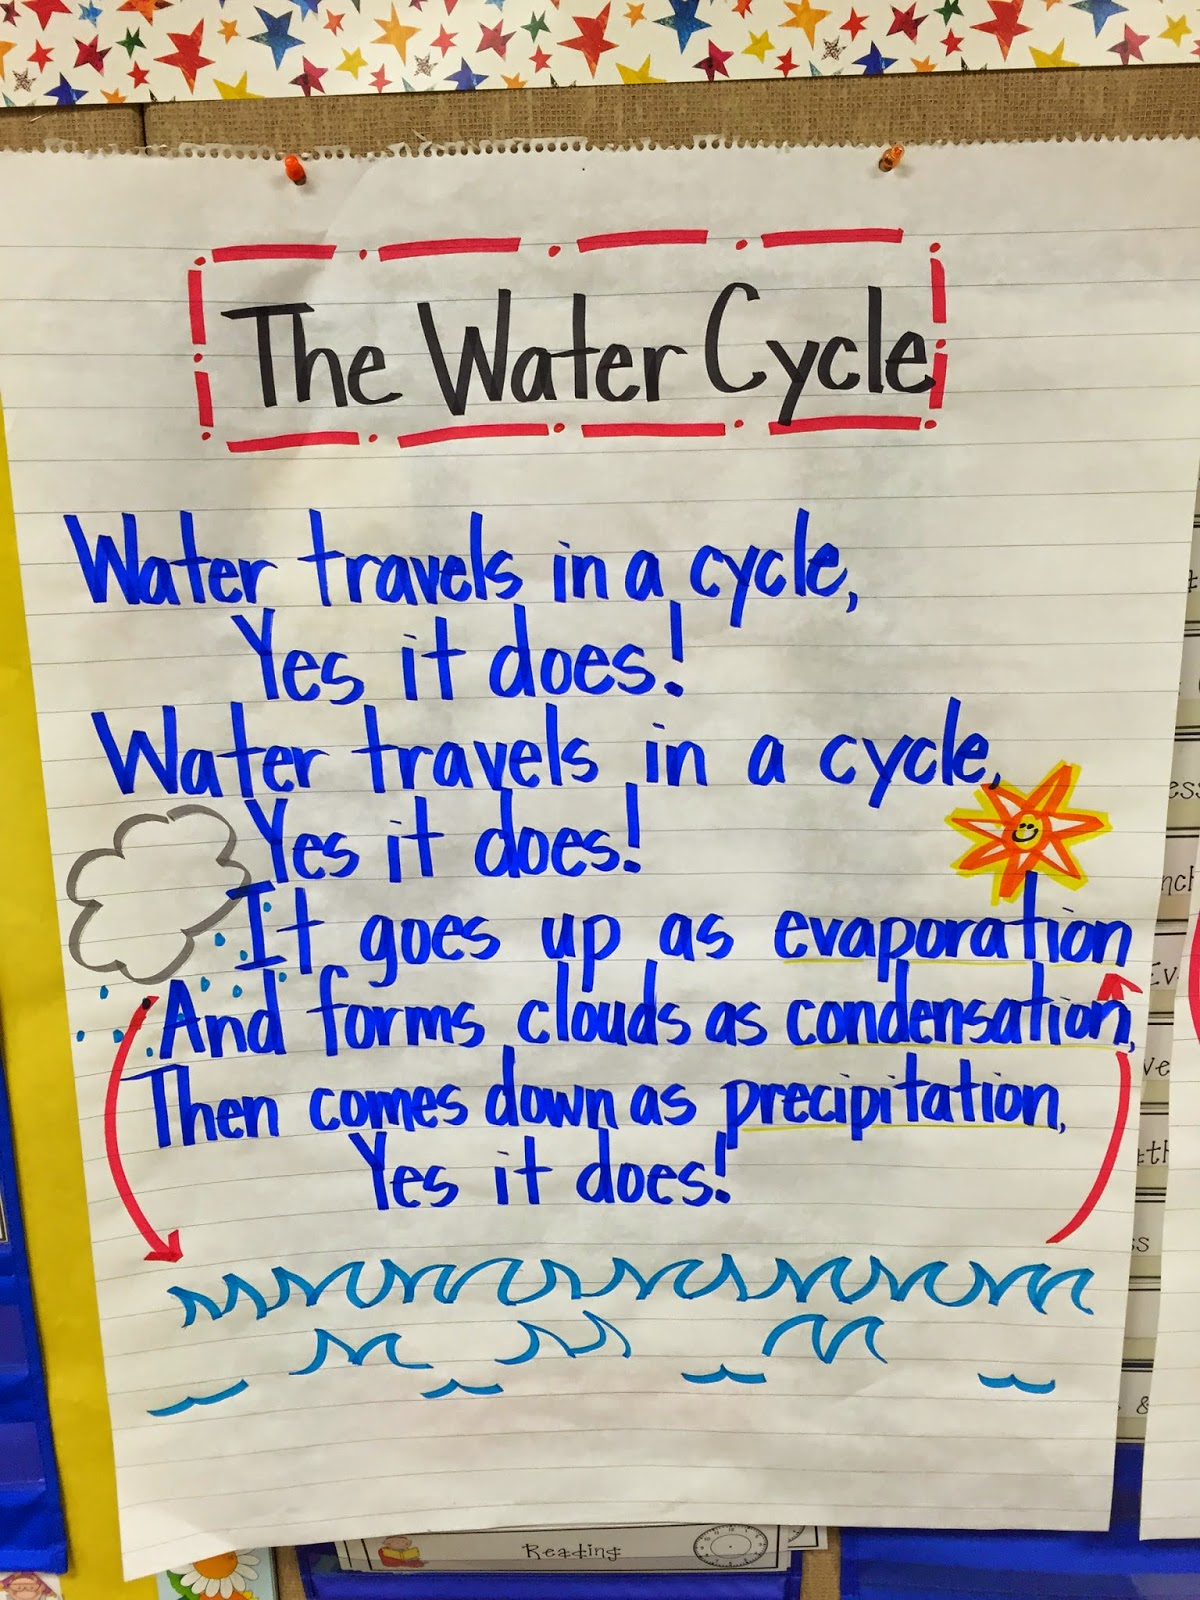 Worksheets Speech In Watercycl first grade fanatics water cycle we started by introducing some sweet song and making a chart as class to introduce the cycle